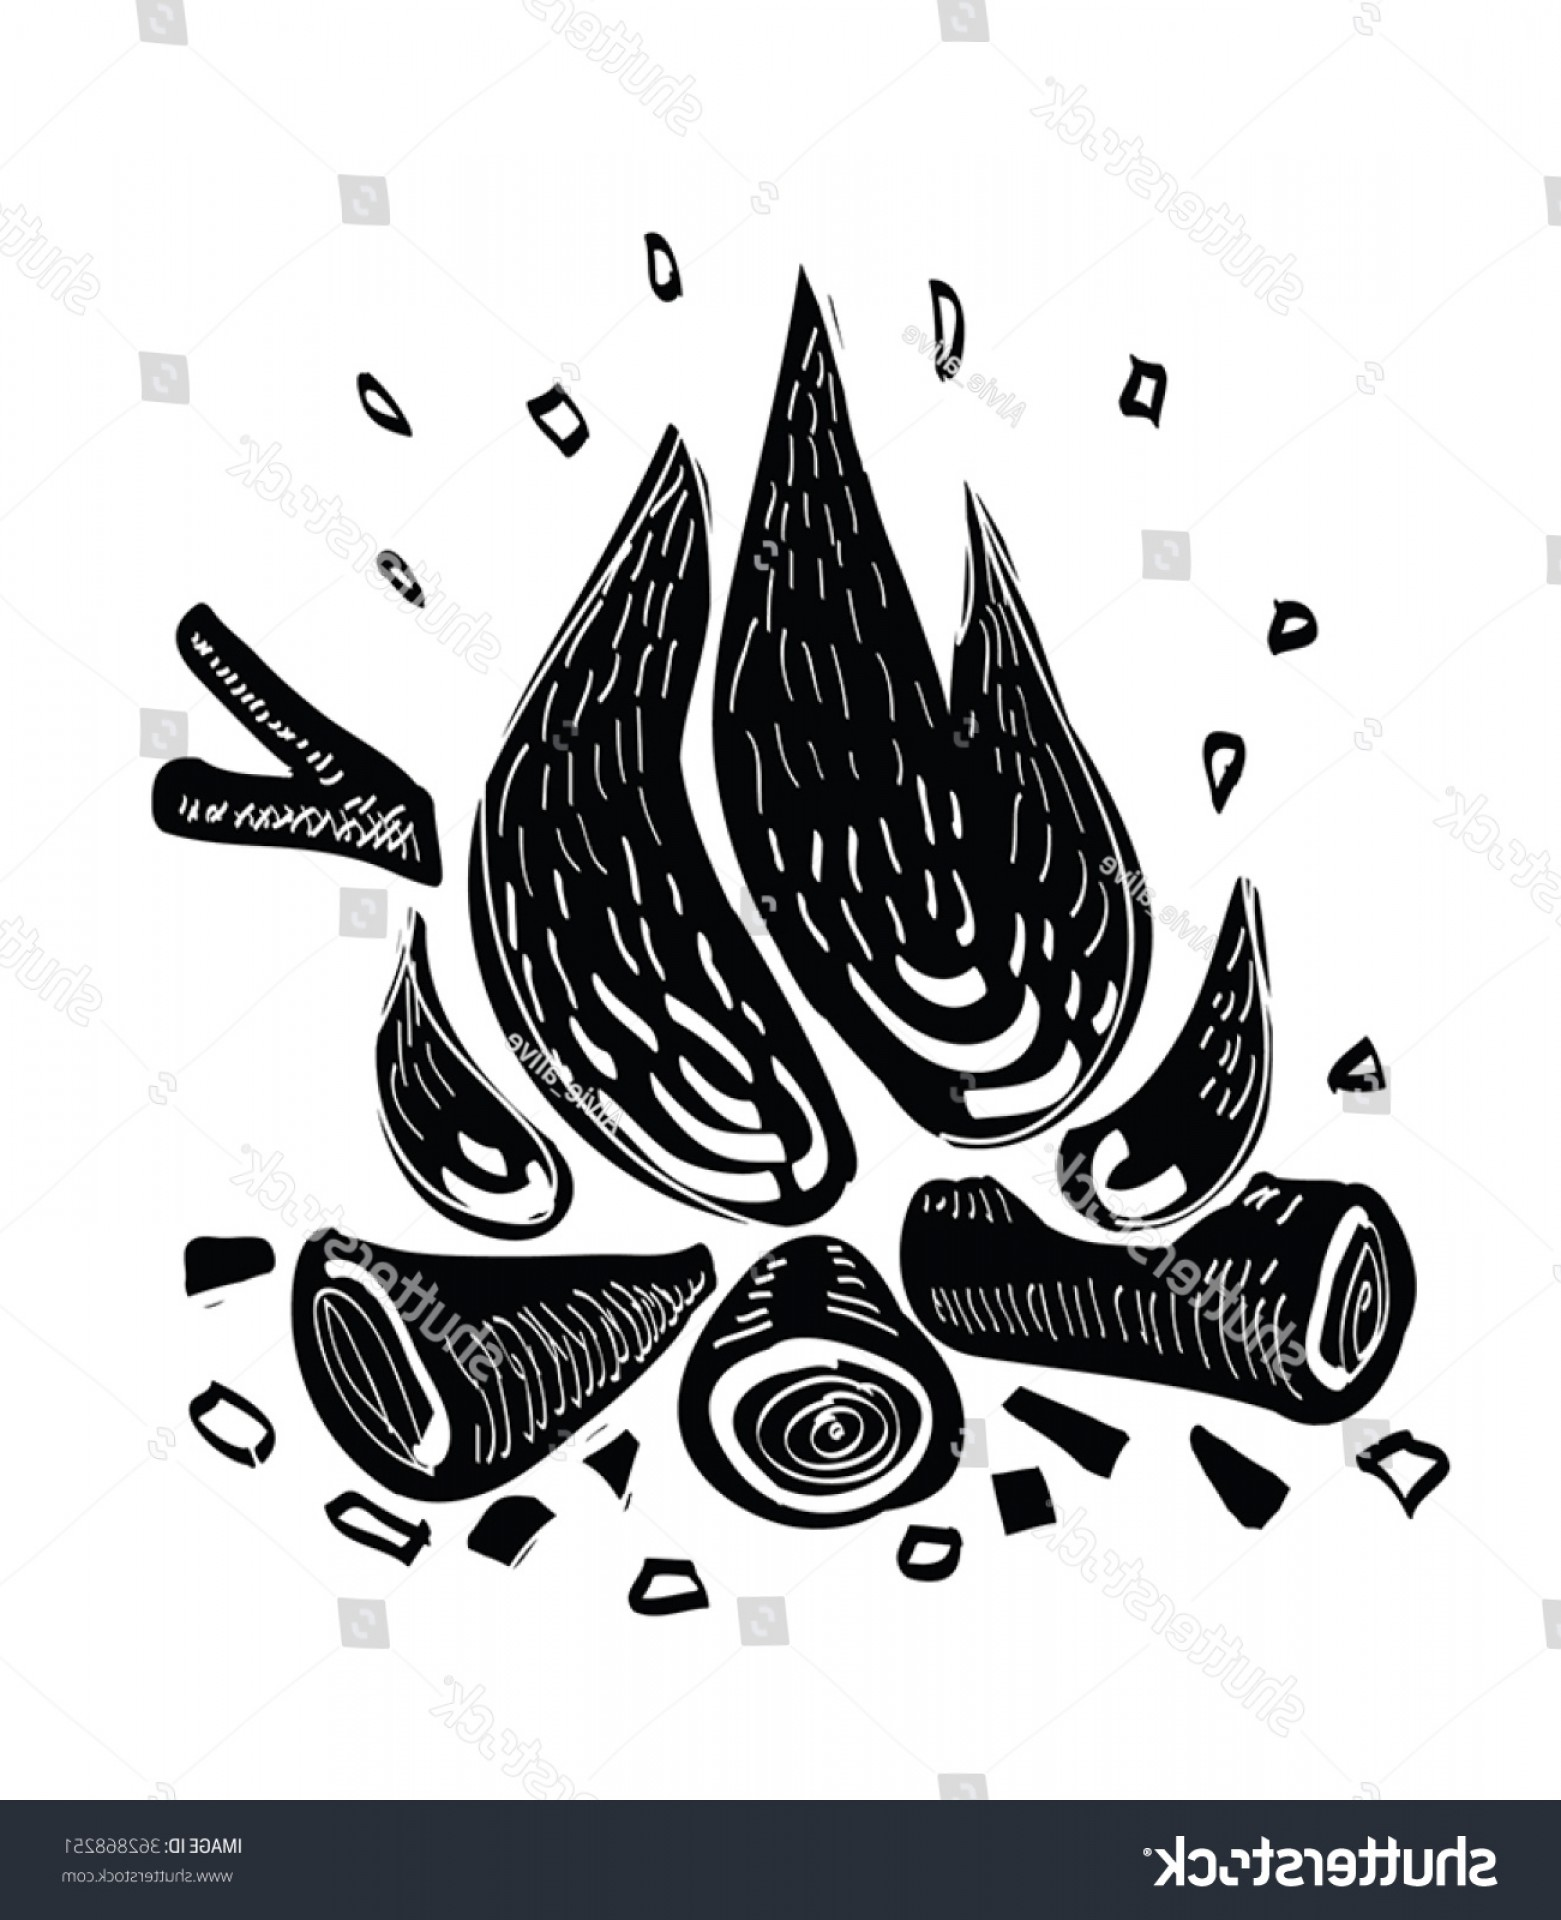 1561x1920 Campfire Vector Illustration Black Ink Silhouettes Arenawp